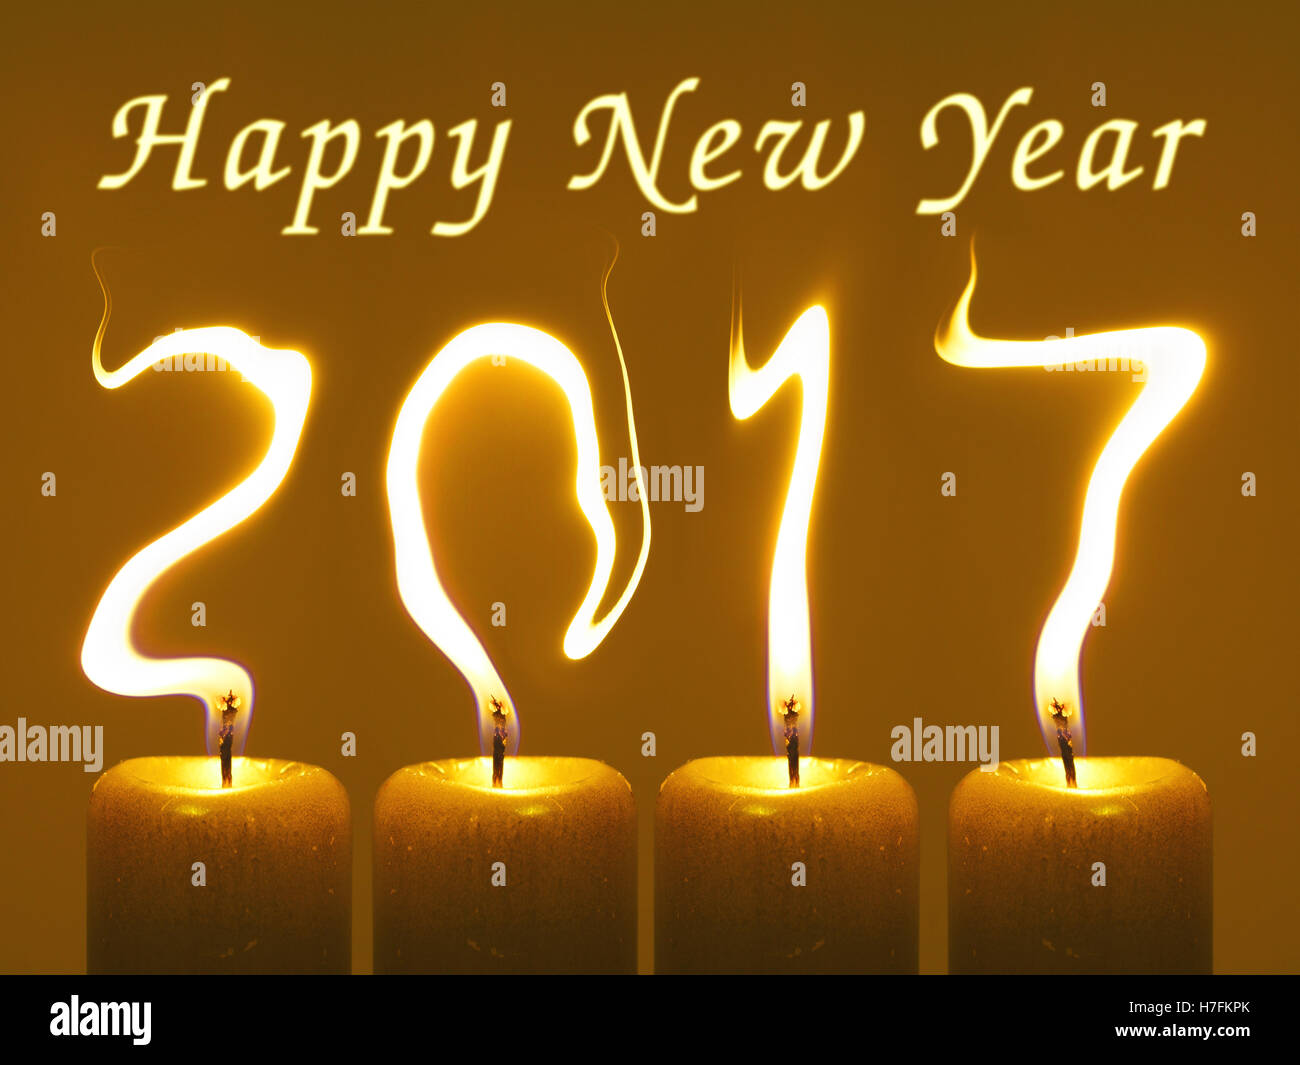 New Year Greetings Card Stock Photos New Year Greetings Card Stock